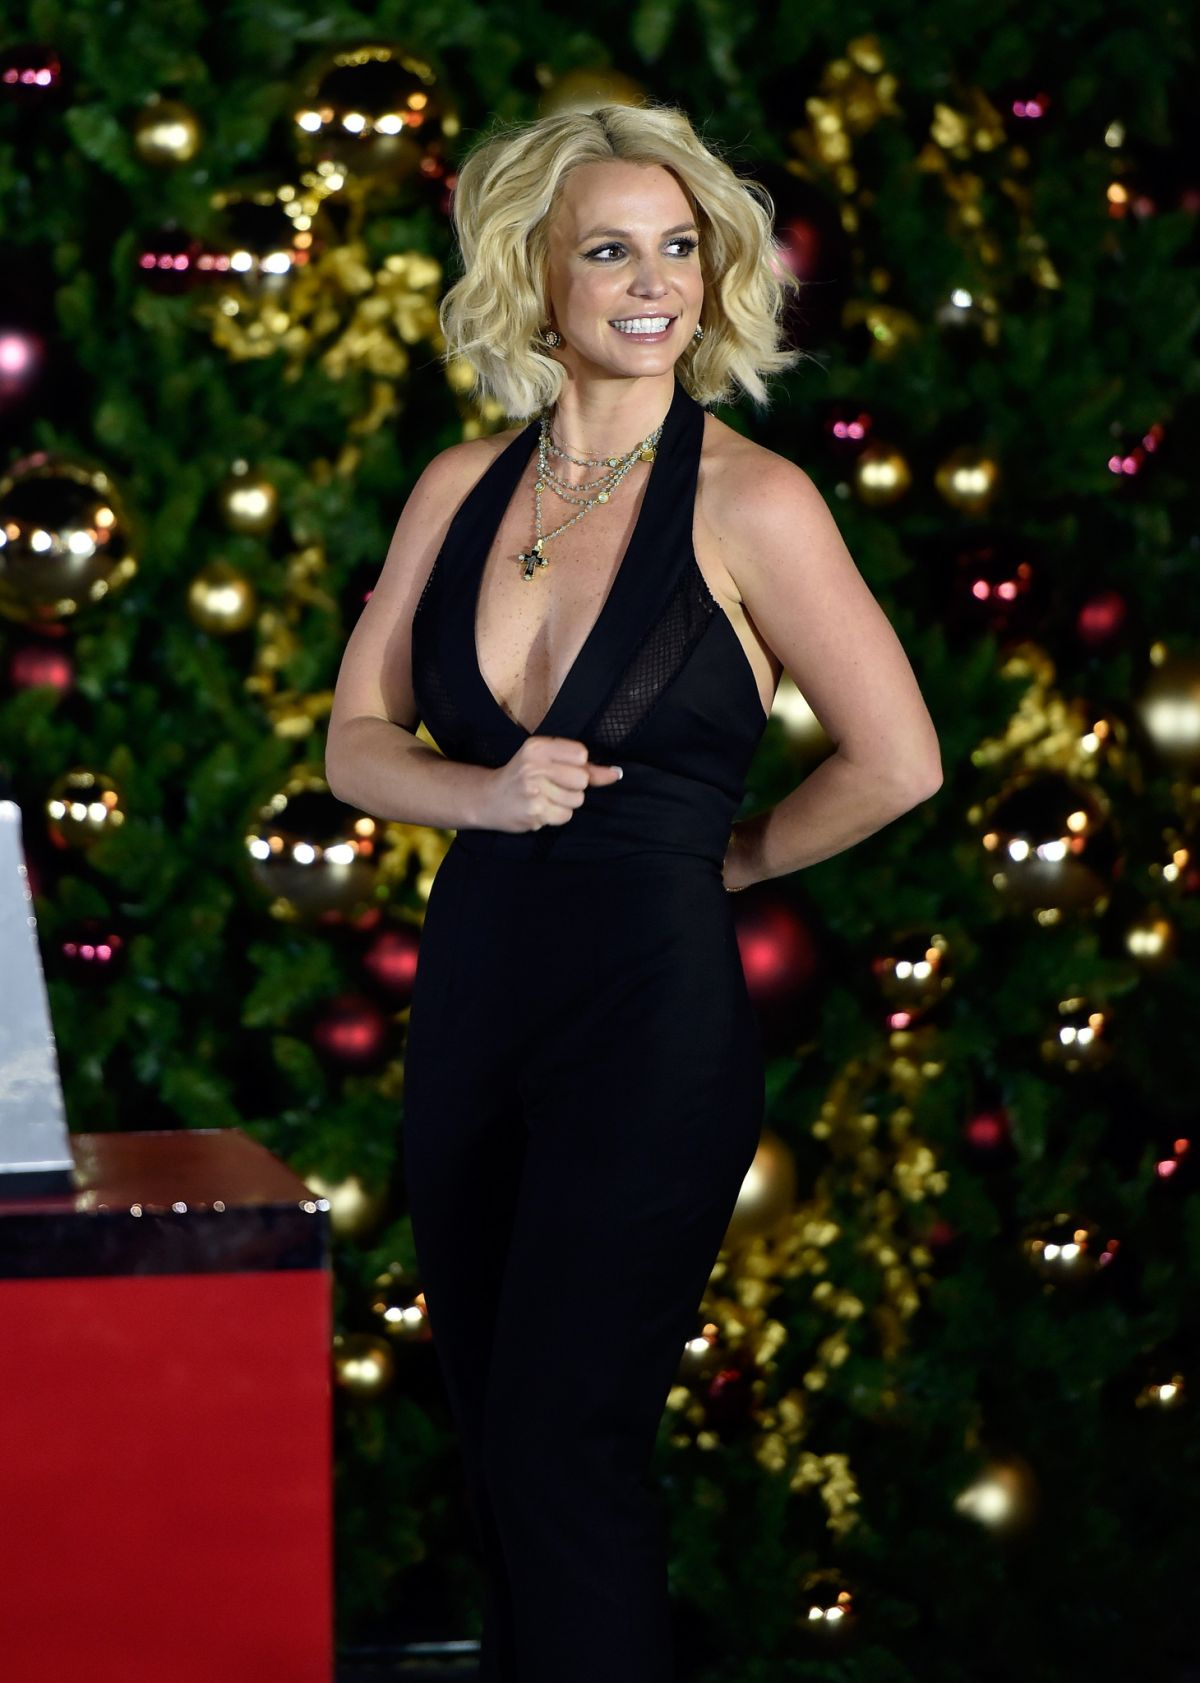 britney-spears-at-christmas-tree-lighting-ceremony-at-linq-promenade-in-las-vegas-11-21-2015_1.jpg